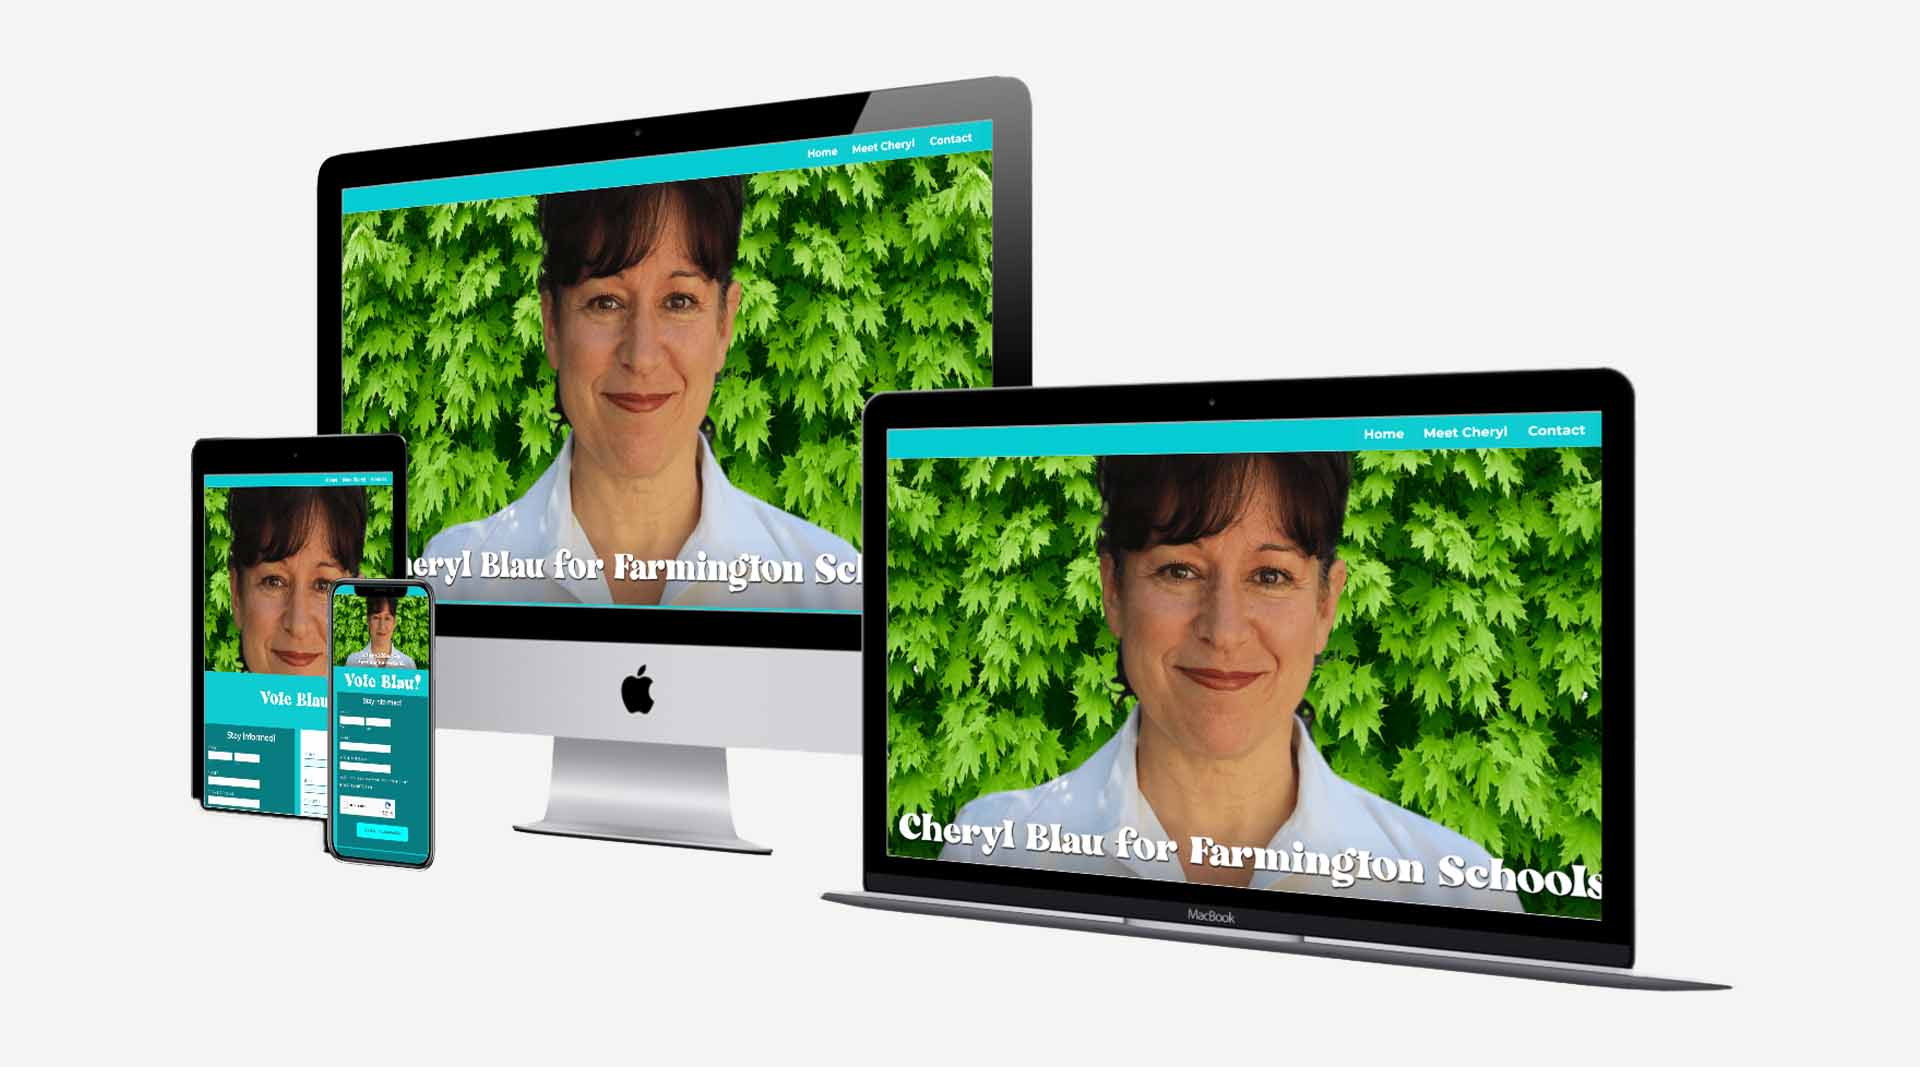 Graphic showing the website created by Clamshell Communications for Cheryl Blau on four device screens